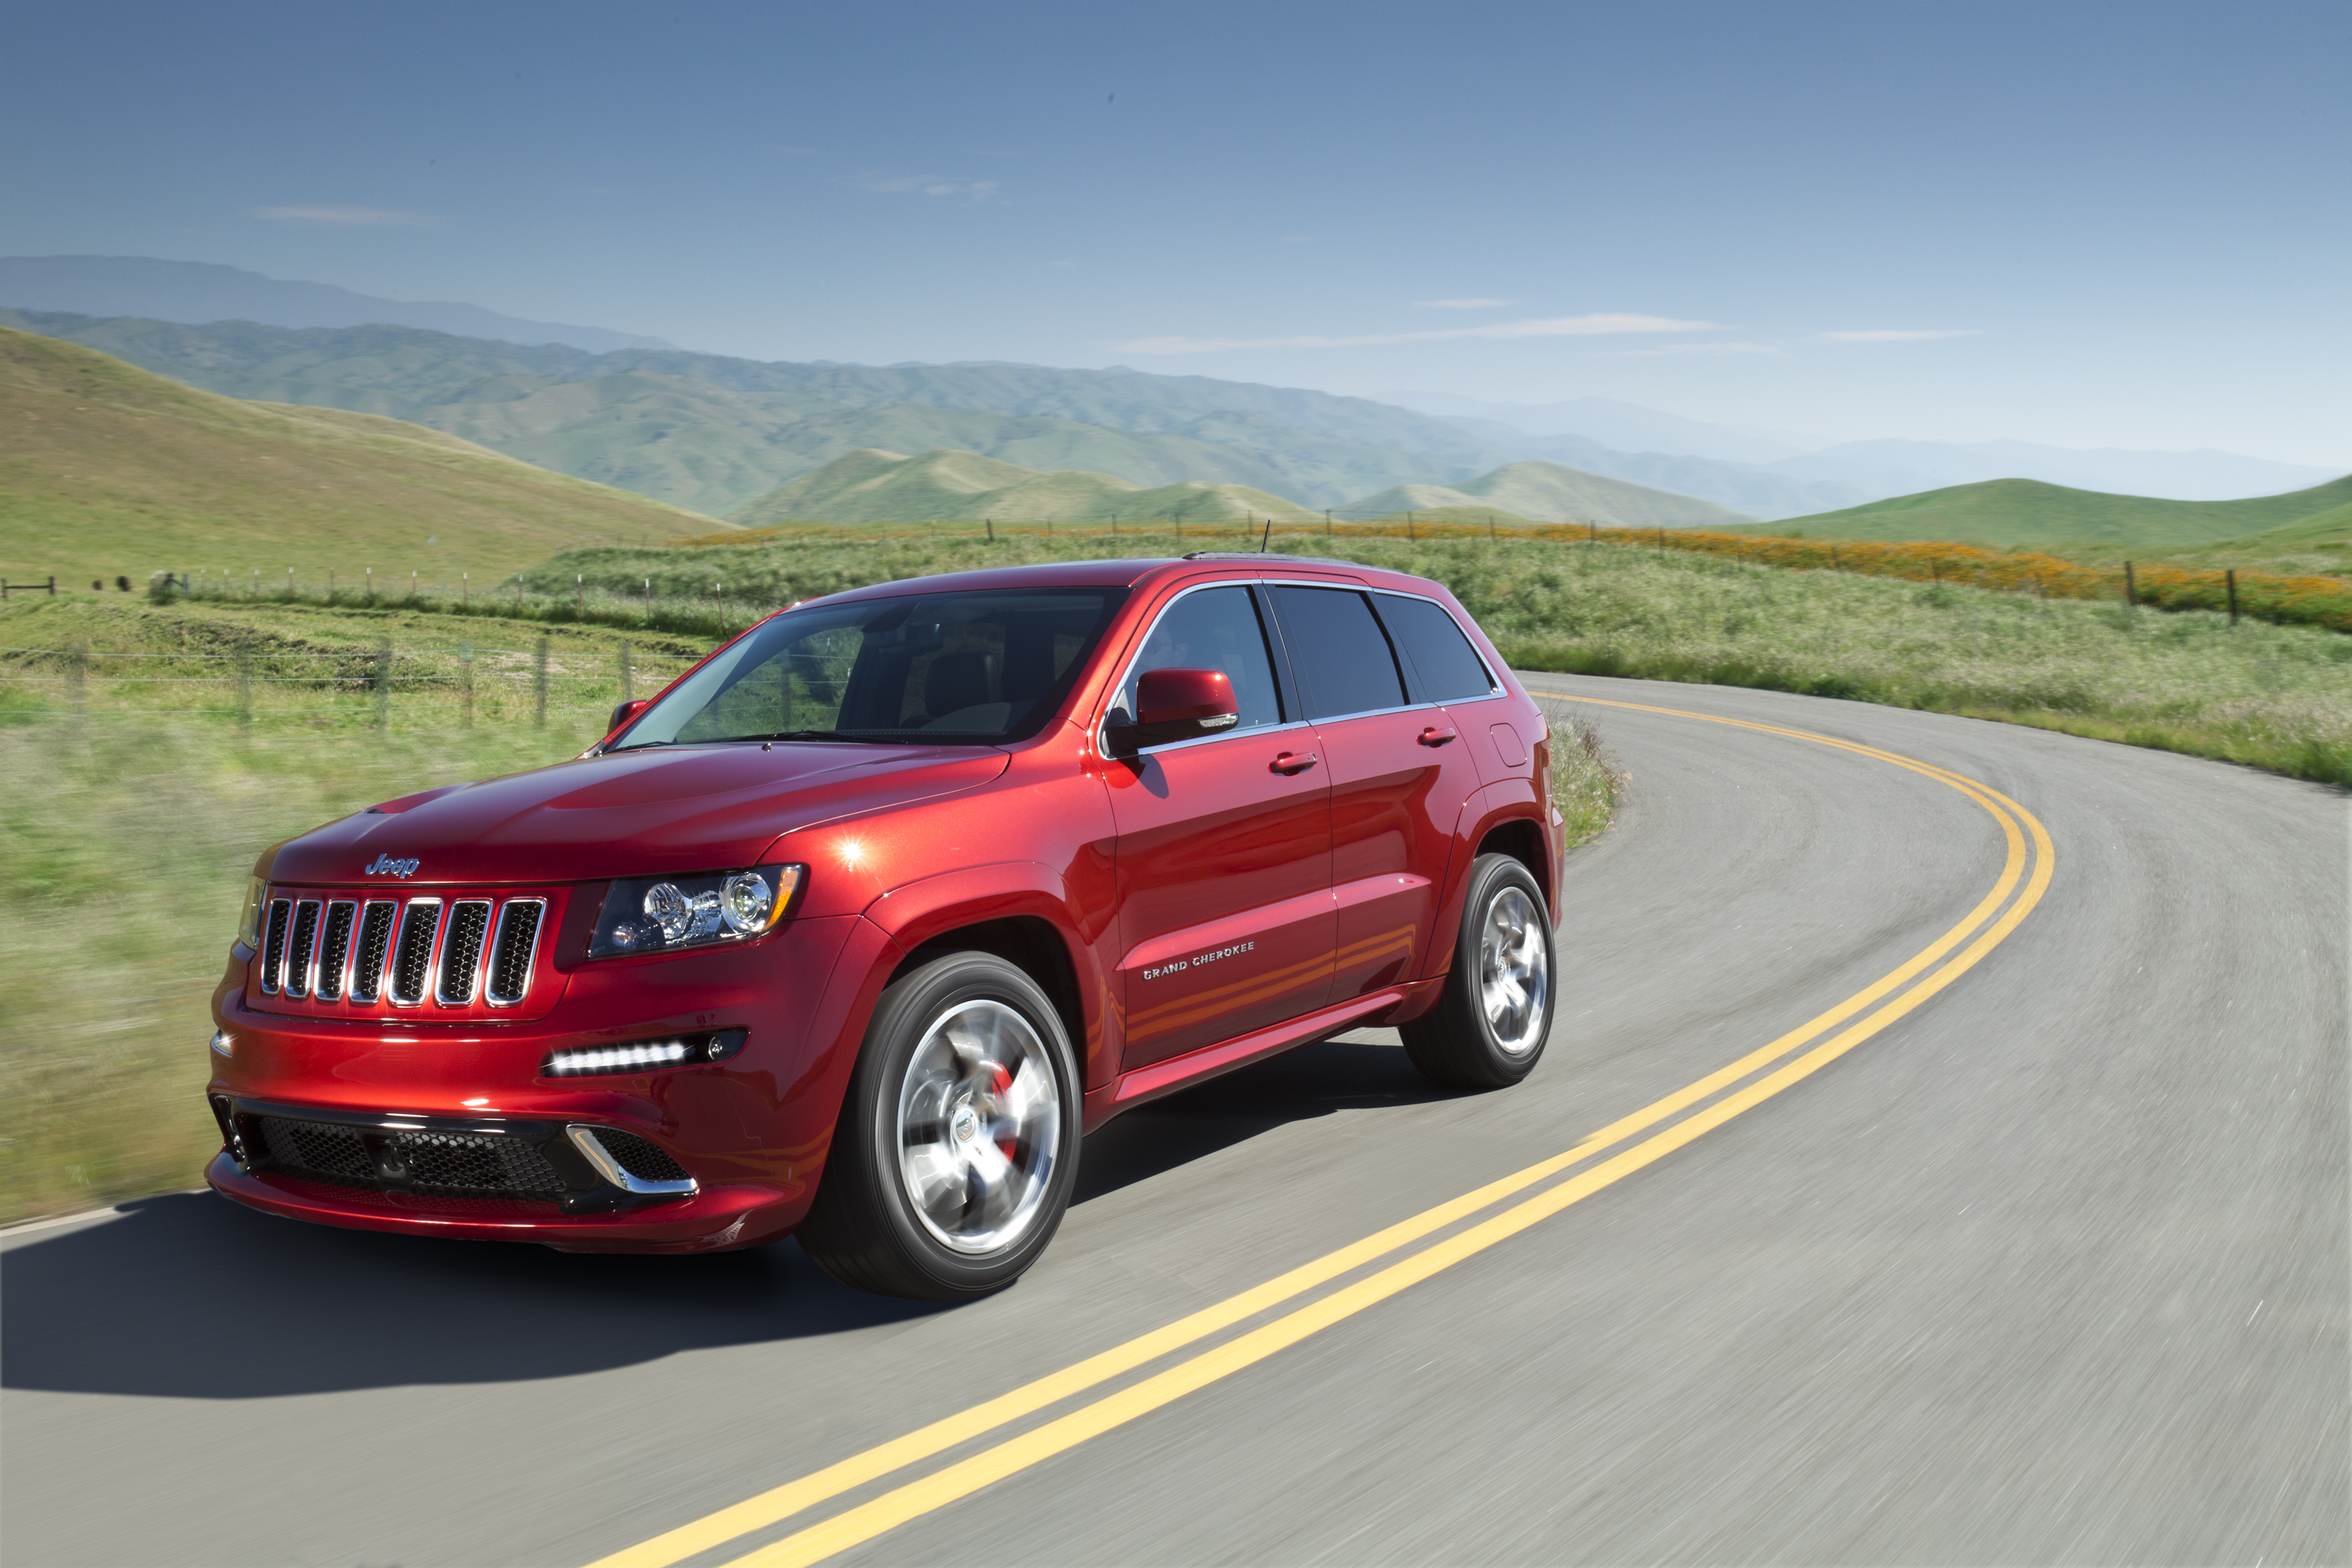 grand gallery red vapor jeep photo no news hellcat srt cherokee edition package autoevolution special is sale for